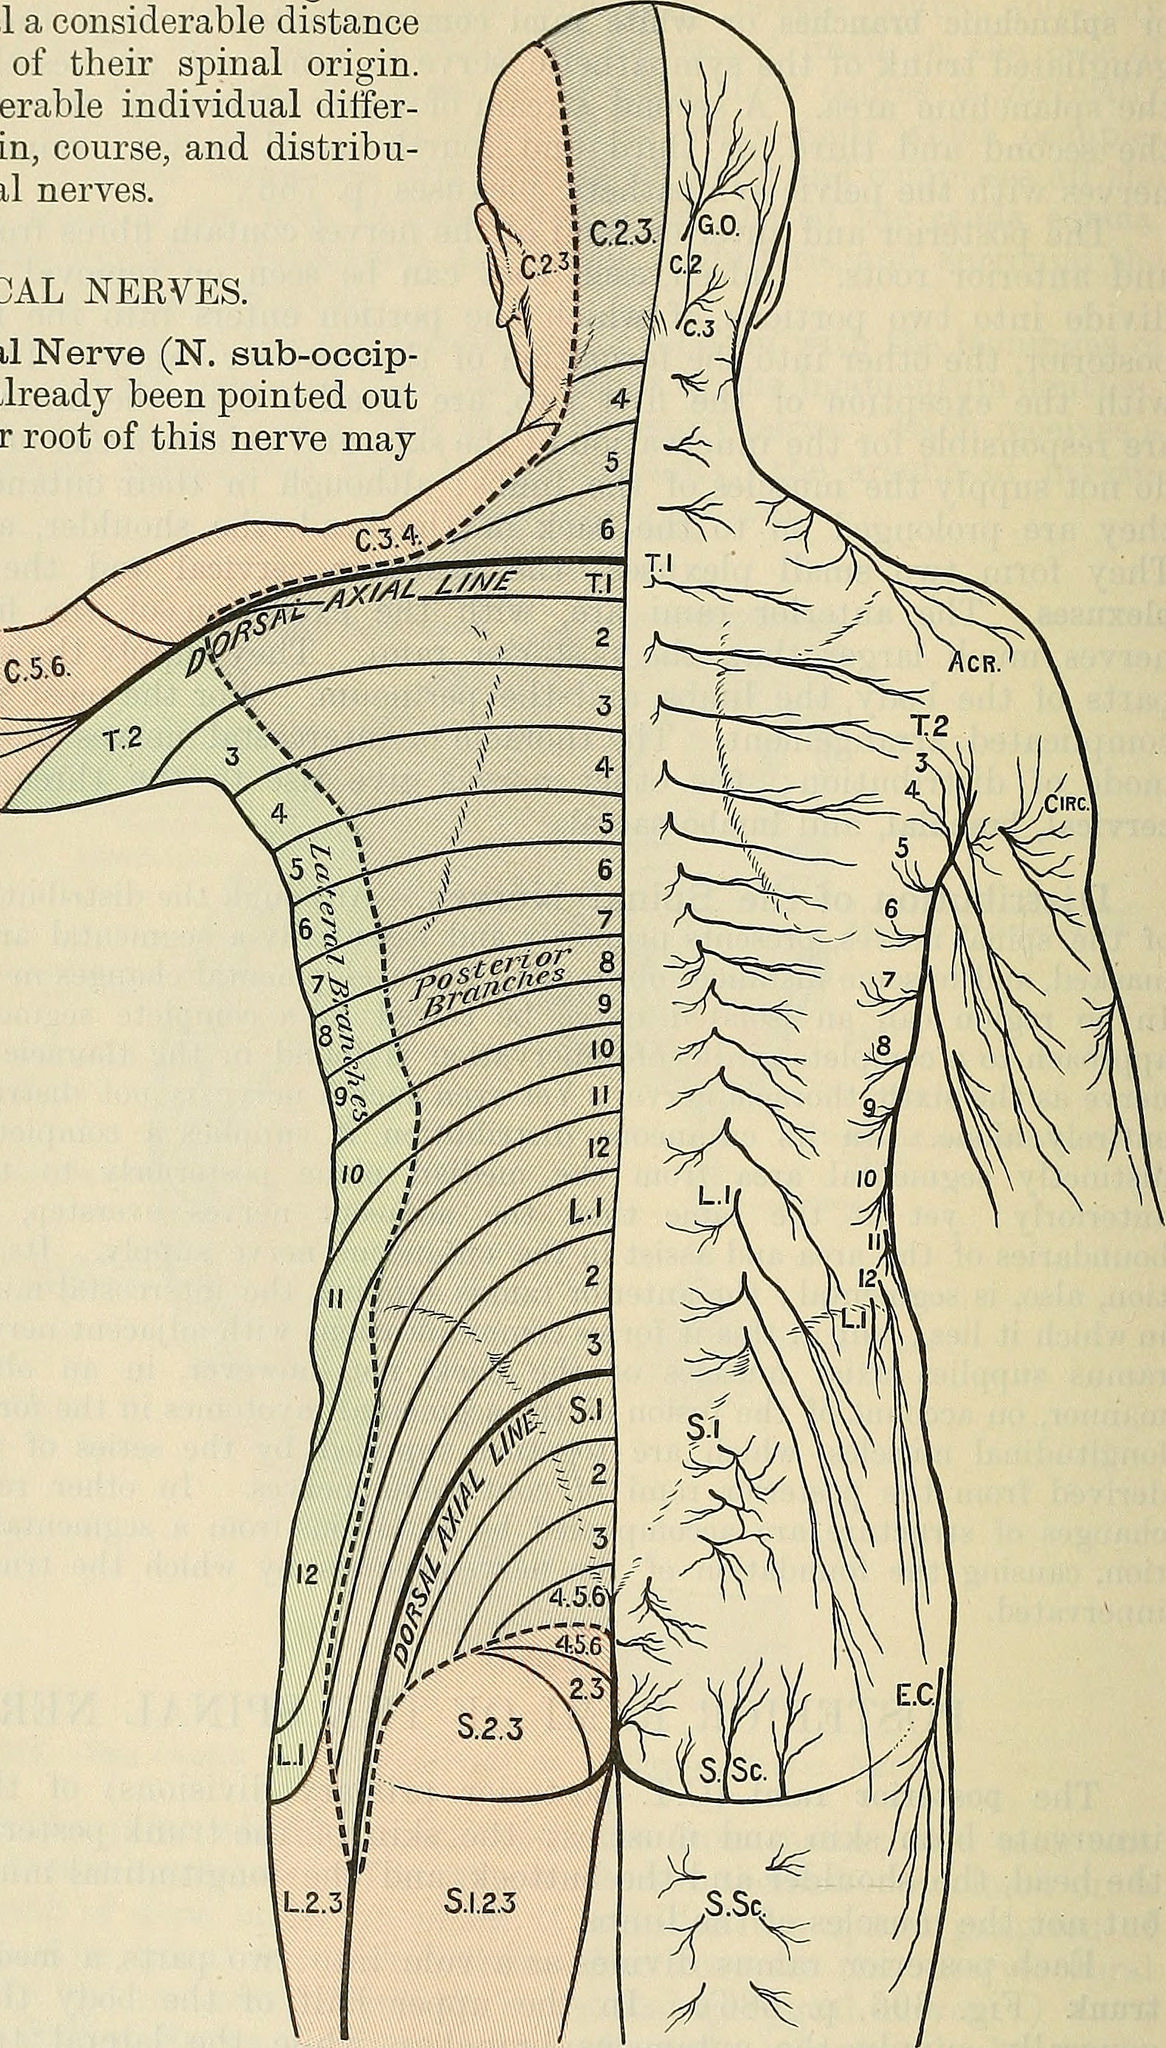 diagram showing thoracic nerve innervation into the abdominal muscles in core strength training